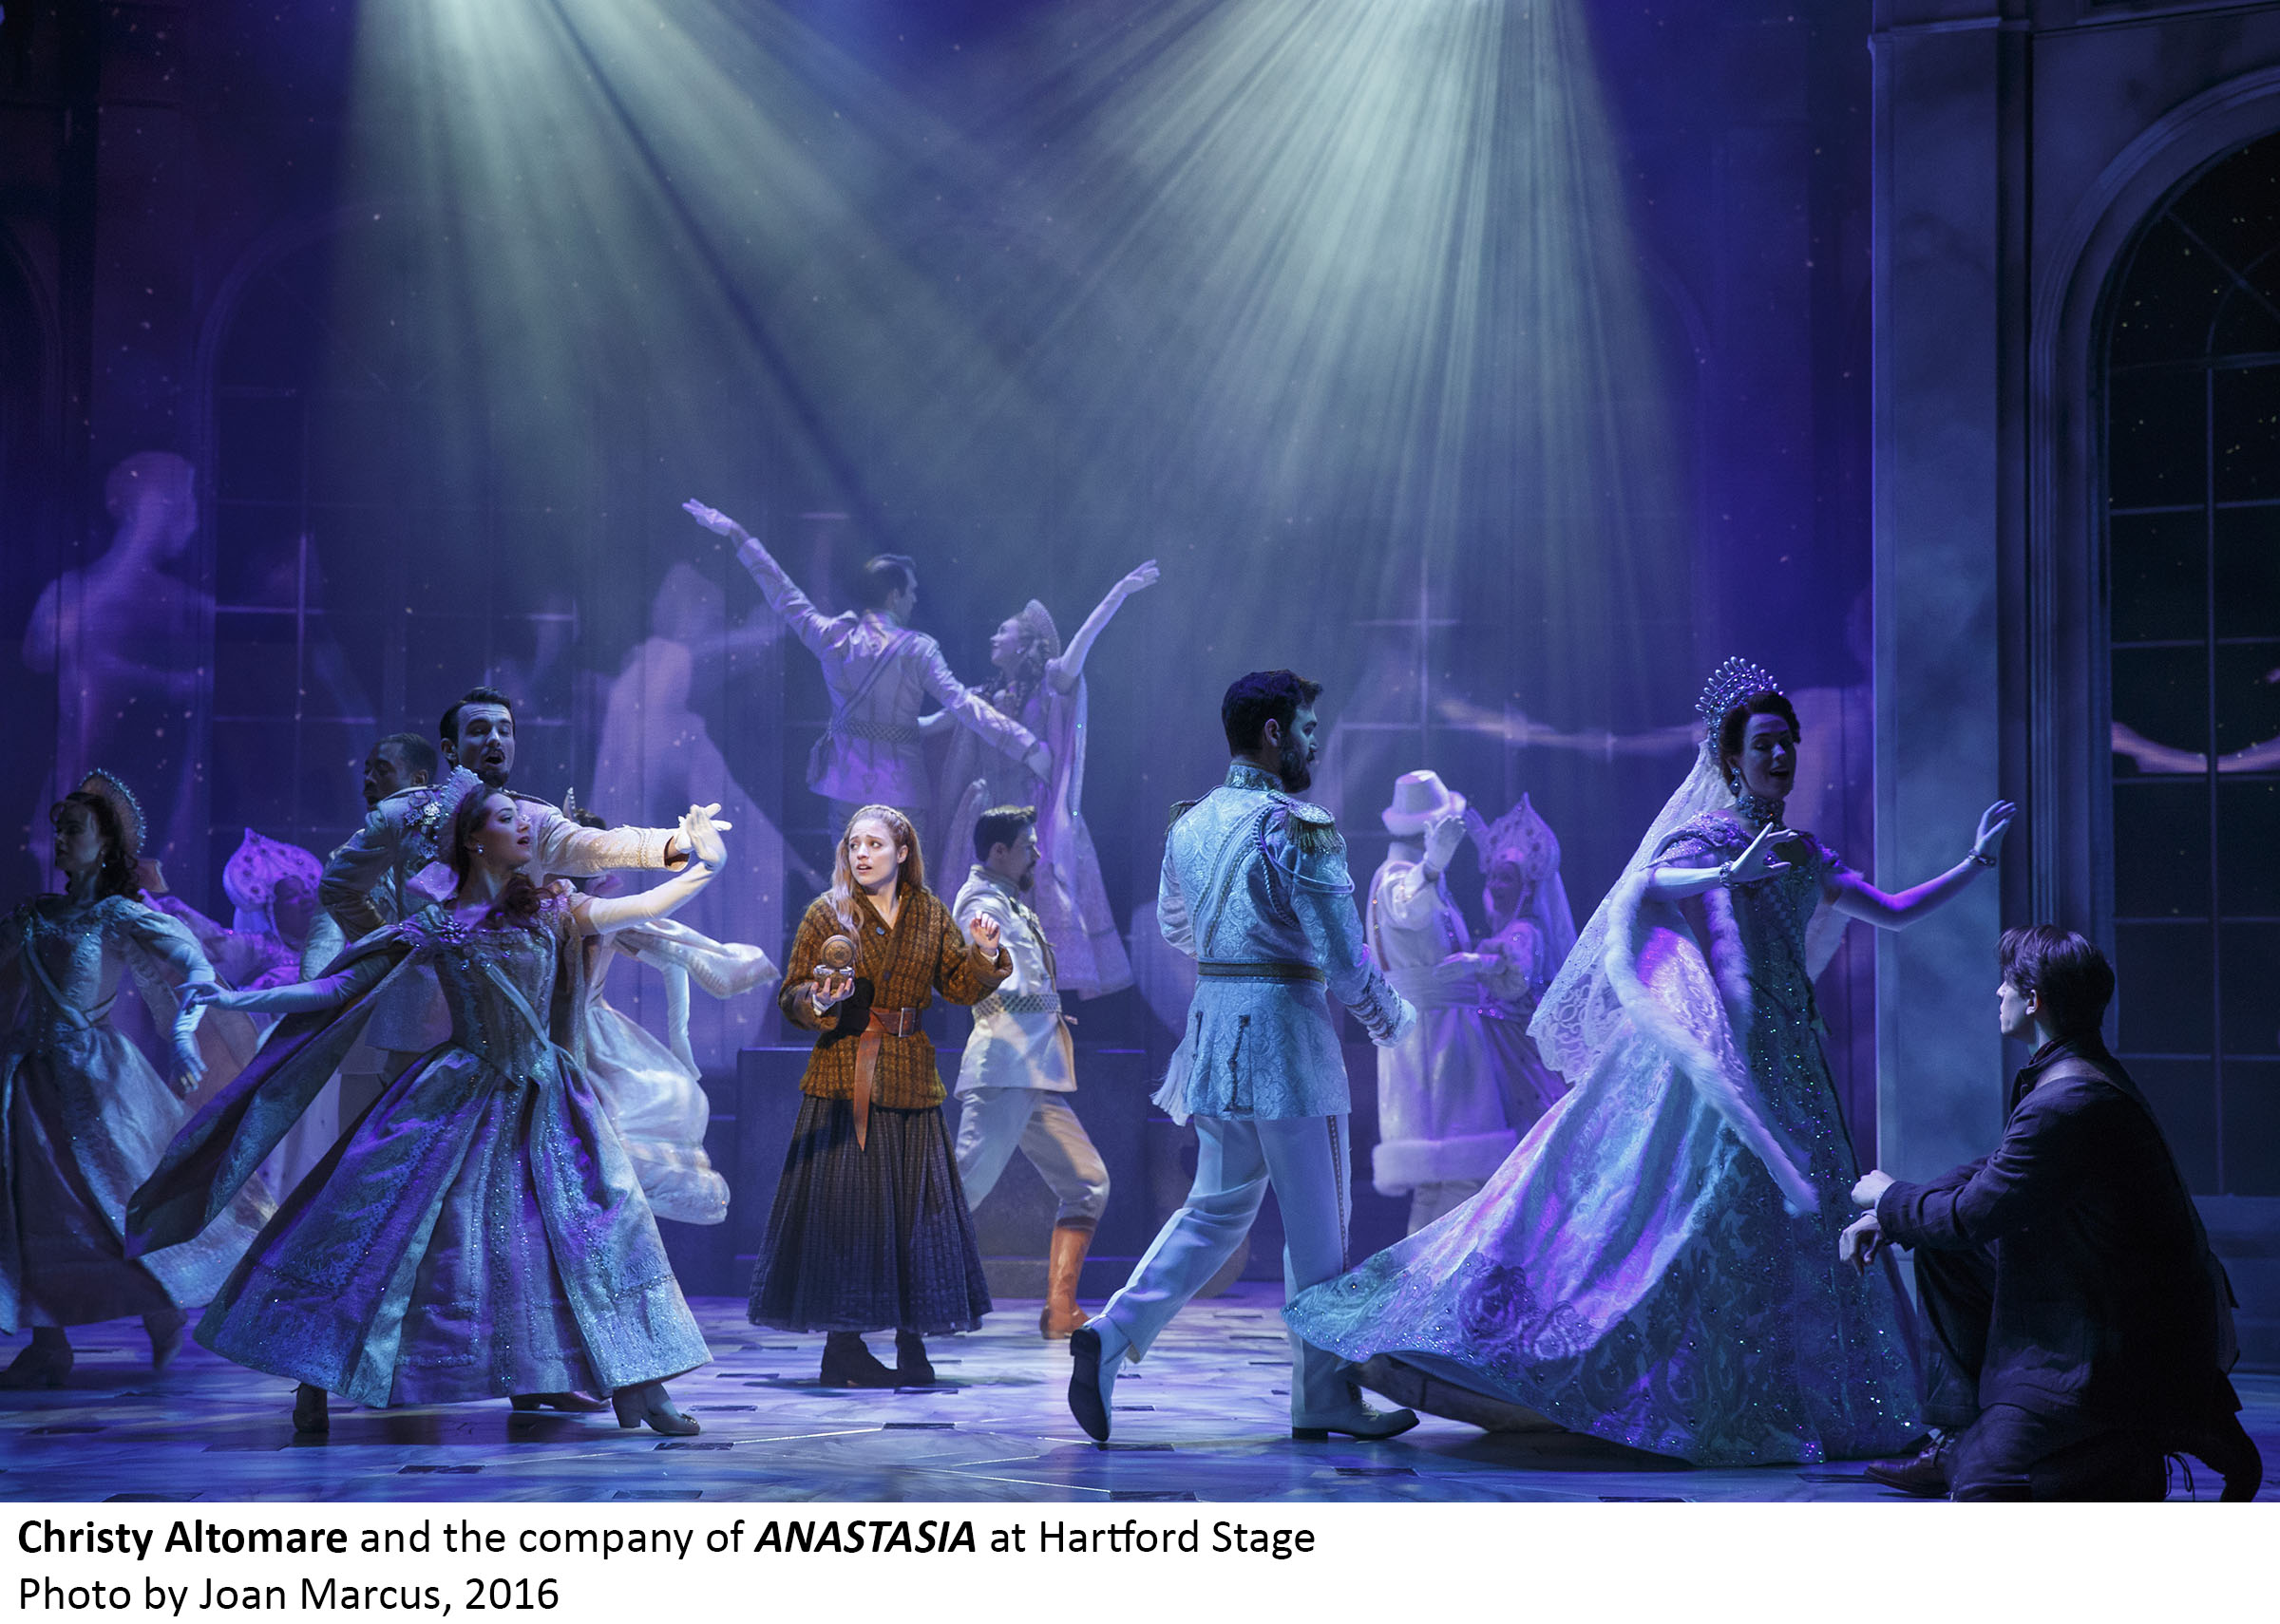 ANASTASIA                               MAY 12 – JUNE 19                               Book by Terrence McNally                               Music by Stephen Flaherty                               Lyrics by Lynn Ahrens                               Inspired by the Twentieth Century Fox Motion Pictures                               Choreography by Peggy Hickey                               Directed by Darko Tresnjak                               ARTISTS                               EVENTS & TALKS                               REVIEWS & PRESS                               BACKGROUND INFO                               Artistic                               Scenic Design                               Alexander DodgeCostume Design                               Linda ChoLighting Design                               Donald HolderSound Design                               Peter HylenskiVideo & Projection Design                               Aaron RhyneWig & Hair Design                               Charles G. LaPointeMusic Director                               Thomas MurrayOrchestrator                               Doug BestermanVocal & Text Coach                               Claudia Hill-SparksMusic Preparation                               Joann Kane Music                               Russell Bartmus & Mark GrahamFight Choreographer                               Jeff BarryCasting                               Telsey + Company                               Craig Burns, CSAVocal Arranger                               Stephen FlahertyDance Music Arranger                               David ChaseAssociate Music Director                               Steven MaloneDramaturg                                Elizabeth WilliamsonProduction Stage Manager                               Bonnie PansonStage Manager                               Trey JohnsonAssistant Stage Manager                               Kelly Hardy                                                              Cast                               Anya                               Christy AltomareTsarina Alexandra, Isadora Duncan                               Lauren BlackmanVlad Popov                               John BoltonAnastasia, Age 6, Prince Alexei Romanov (Understudy)                               Riley BriggsSuitor, Hotel Manager                               James Brown IIISwing                               Maxwell CarmelSuitor, Prince Siegfried In Swan Lake                               Max ClaytonComrade, Coco Chanel                               Janet DickinsonGleb                               Manoel FelcianoTsar Nicholas Ii, Count Ipolitov                               Constantine GermanacosComrade, Gertrude Stein                               Rayanne GonzalesDmitry                               Derek KlenaGorlinsky, Pablo Picasso                               Ken KrugmanComrade, Ernest Hemingway, Count Leopold                               Kevin LigonSwing                               Katherine MclellanMaria Romanov, Marfa, Odette In Swan Lake                               Alida MichalTatiana Romanov, Tatyana, Josephine Baker                               Shina Ann MorrisComrade, Russian Doorman                               Kevin MunhallCountess Lily Malevsky-Malevitch                               Caroline O'ConnorDowager Empress                               Mary Beth PeilAnastasia, Age 17, Anna                                Molly RushingAnastasia, Age 6, Prince Alexei Romanov                               Nicole ScimecaVon Rothbart In Swan Lake, Django Reinhardt, Dance Captain                               Johnny StellardOlga Romanov, Comrade, Cygnet In Swan Lake                               Samantha Sturm